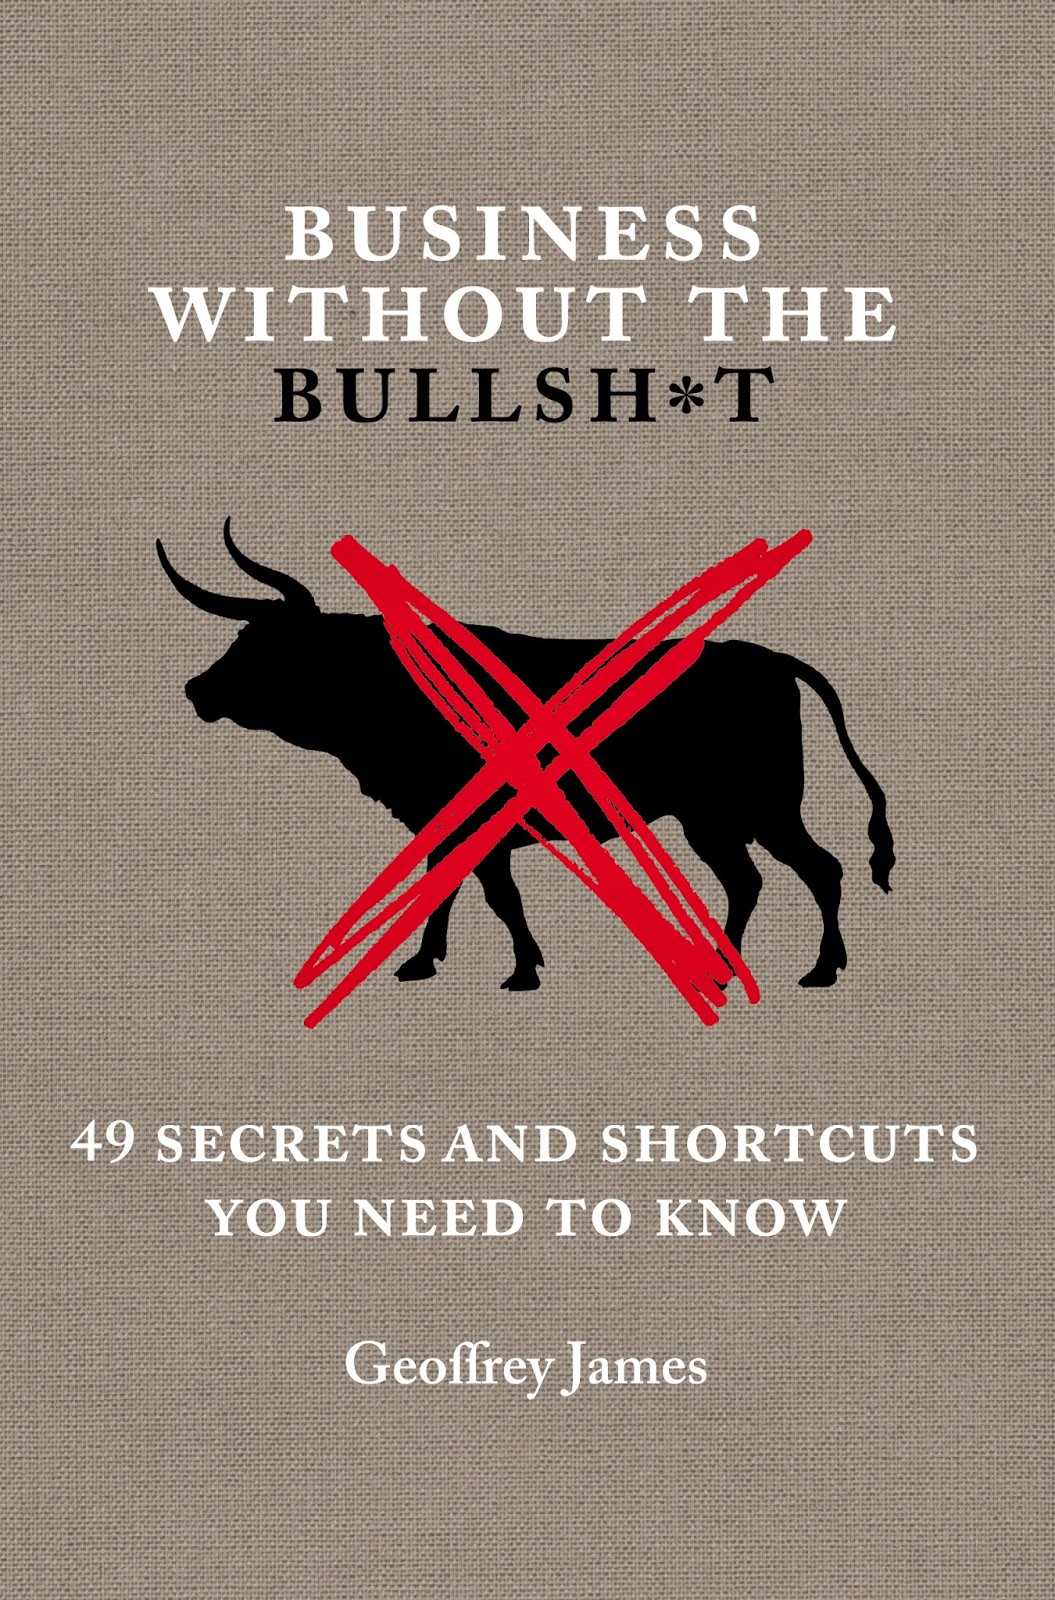 http://www.barnesandnoble.com/w/business-without-the-bullsh-t-geoffrey-james/1116865308?ean=9781455574582